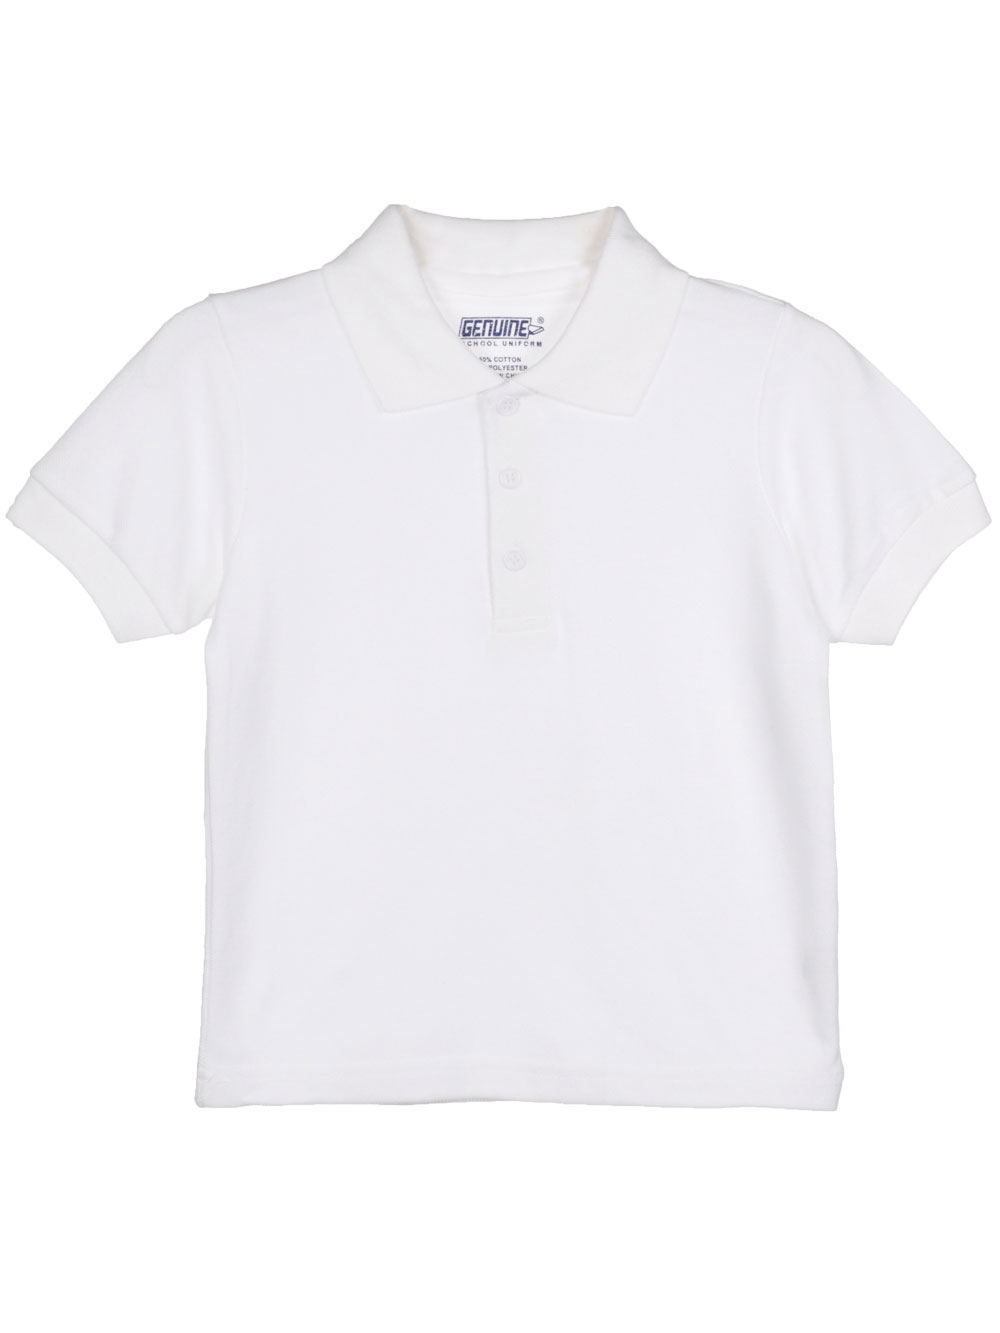 Image of Genuine SS Unisex Pique Polo Sizes 8  20  white 18